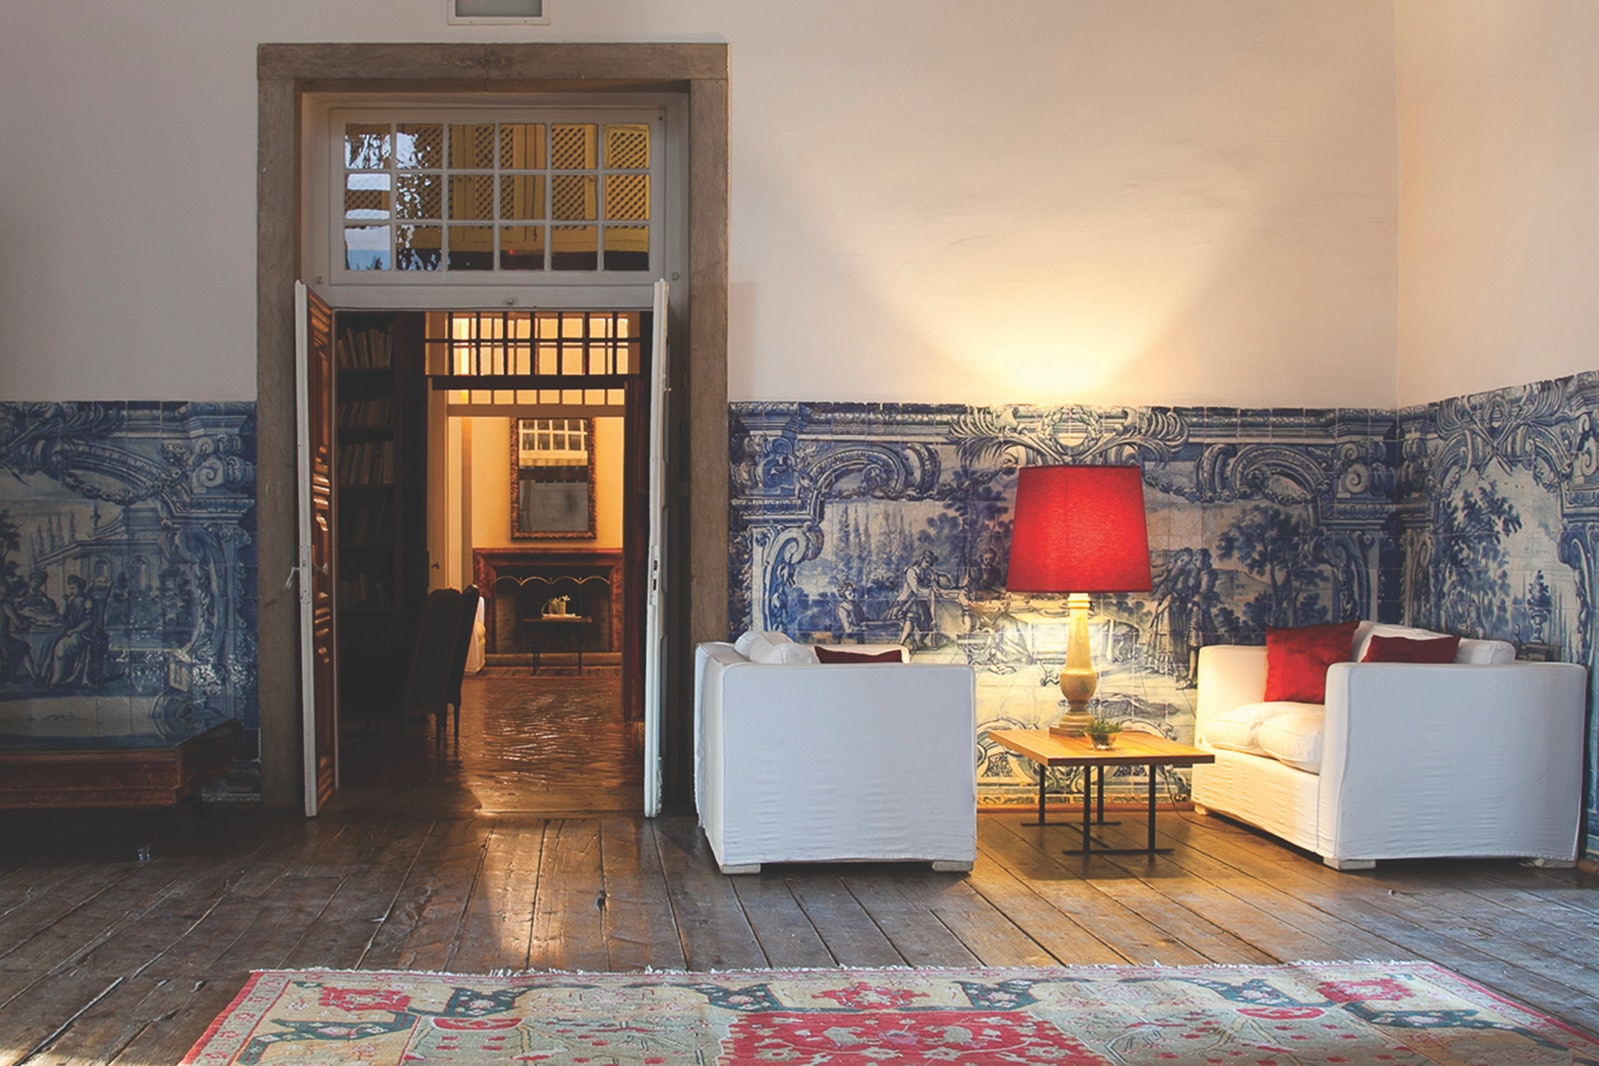 The Palácio Belmonte stays true to its legacy, but its furnishings introduce elements of modern design.